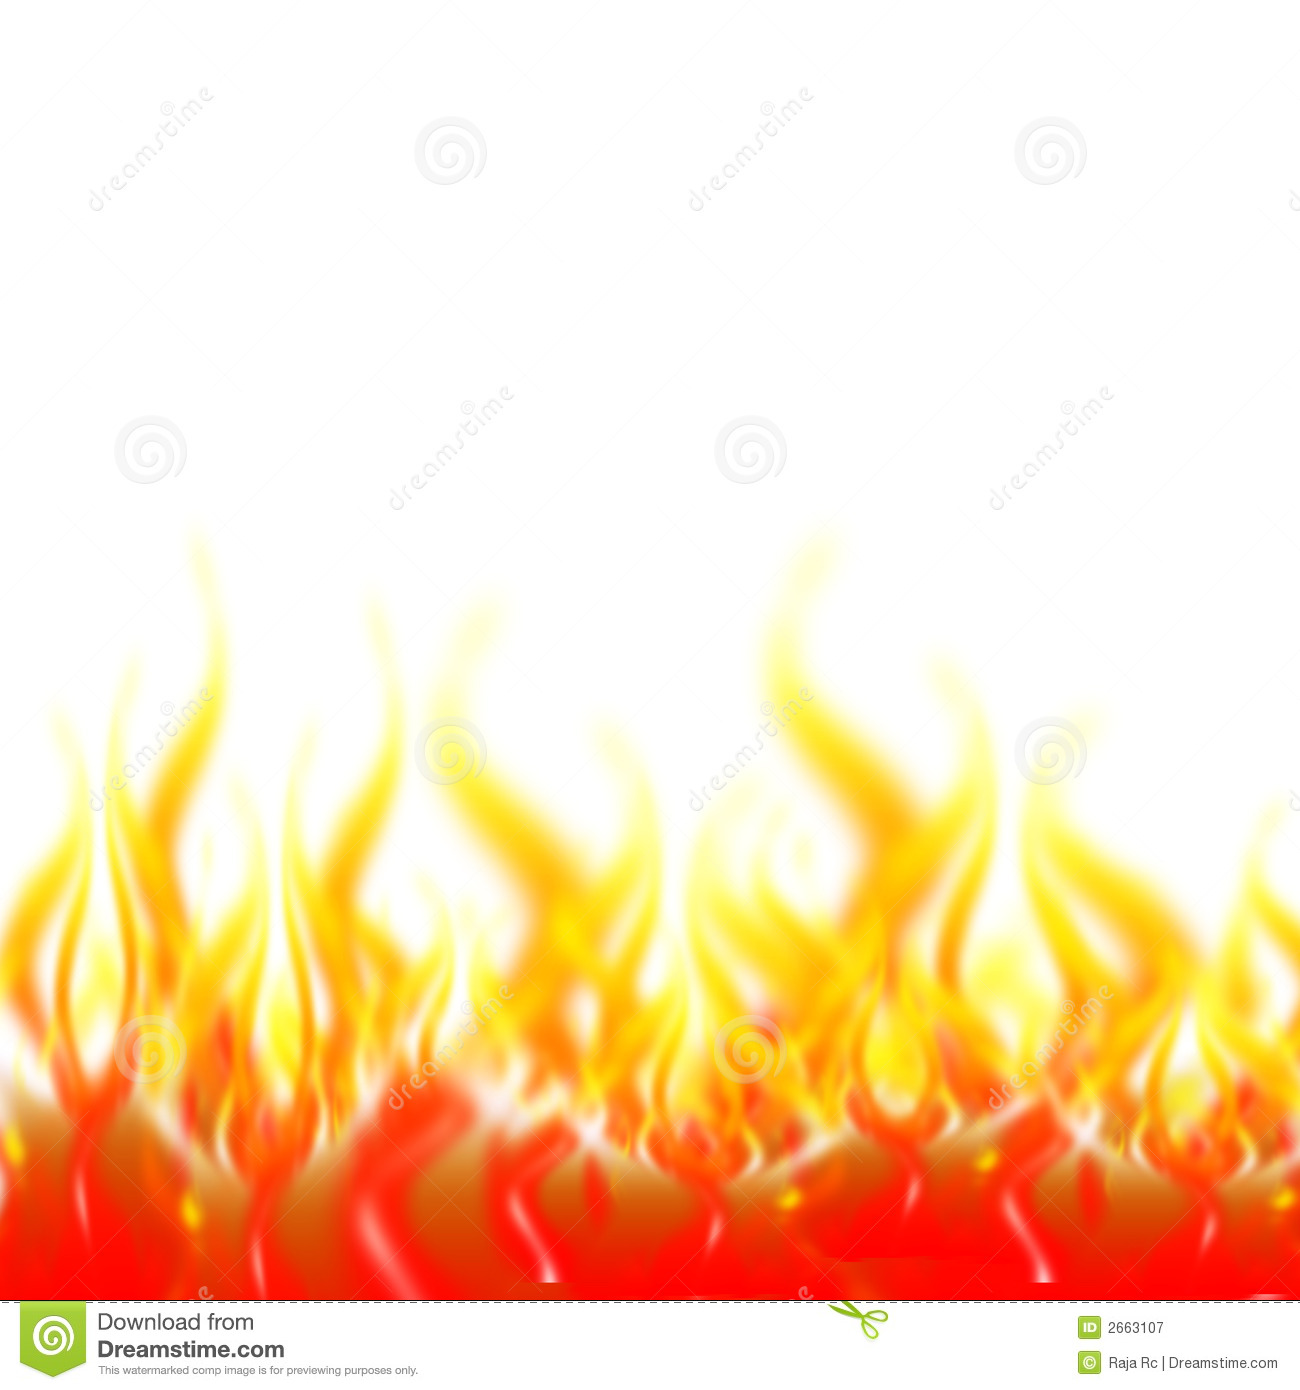 Flames Royalty Free Stock Photography - Image: 2663107